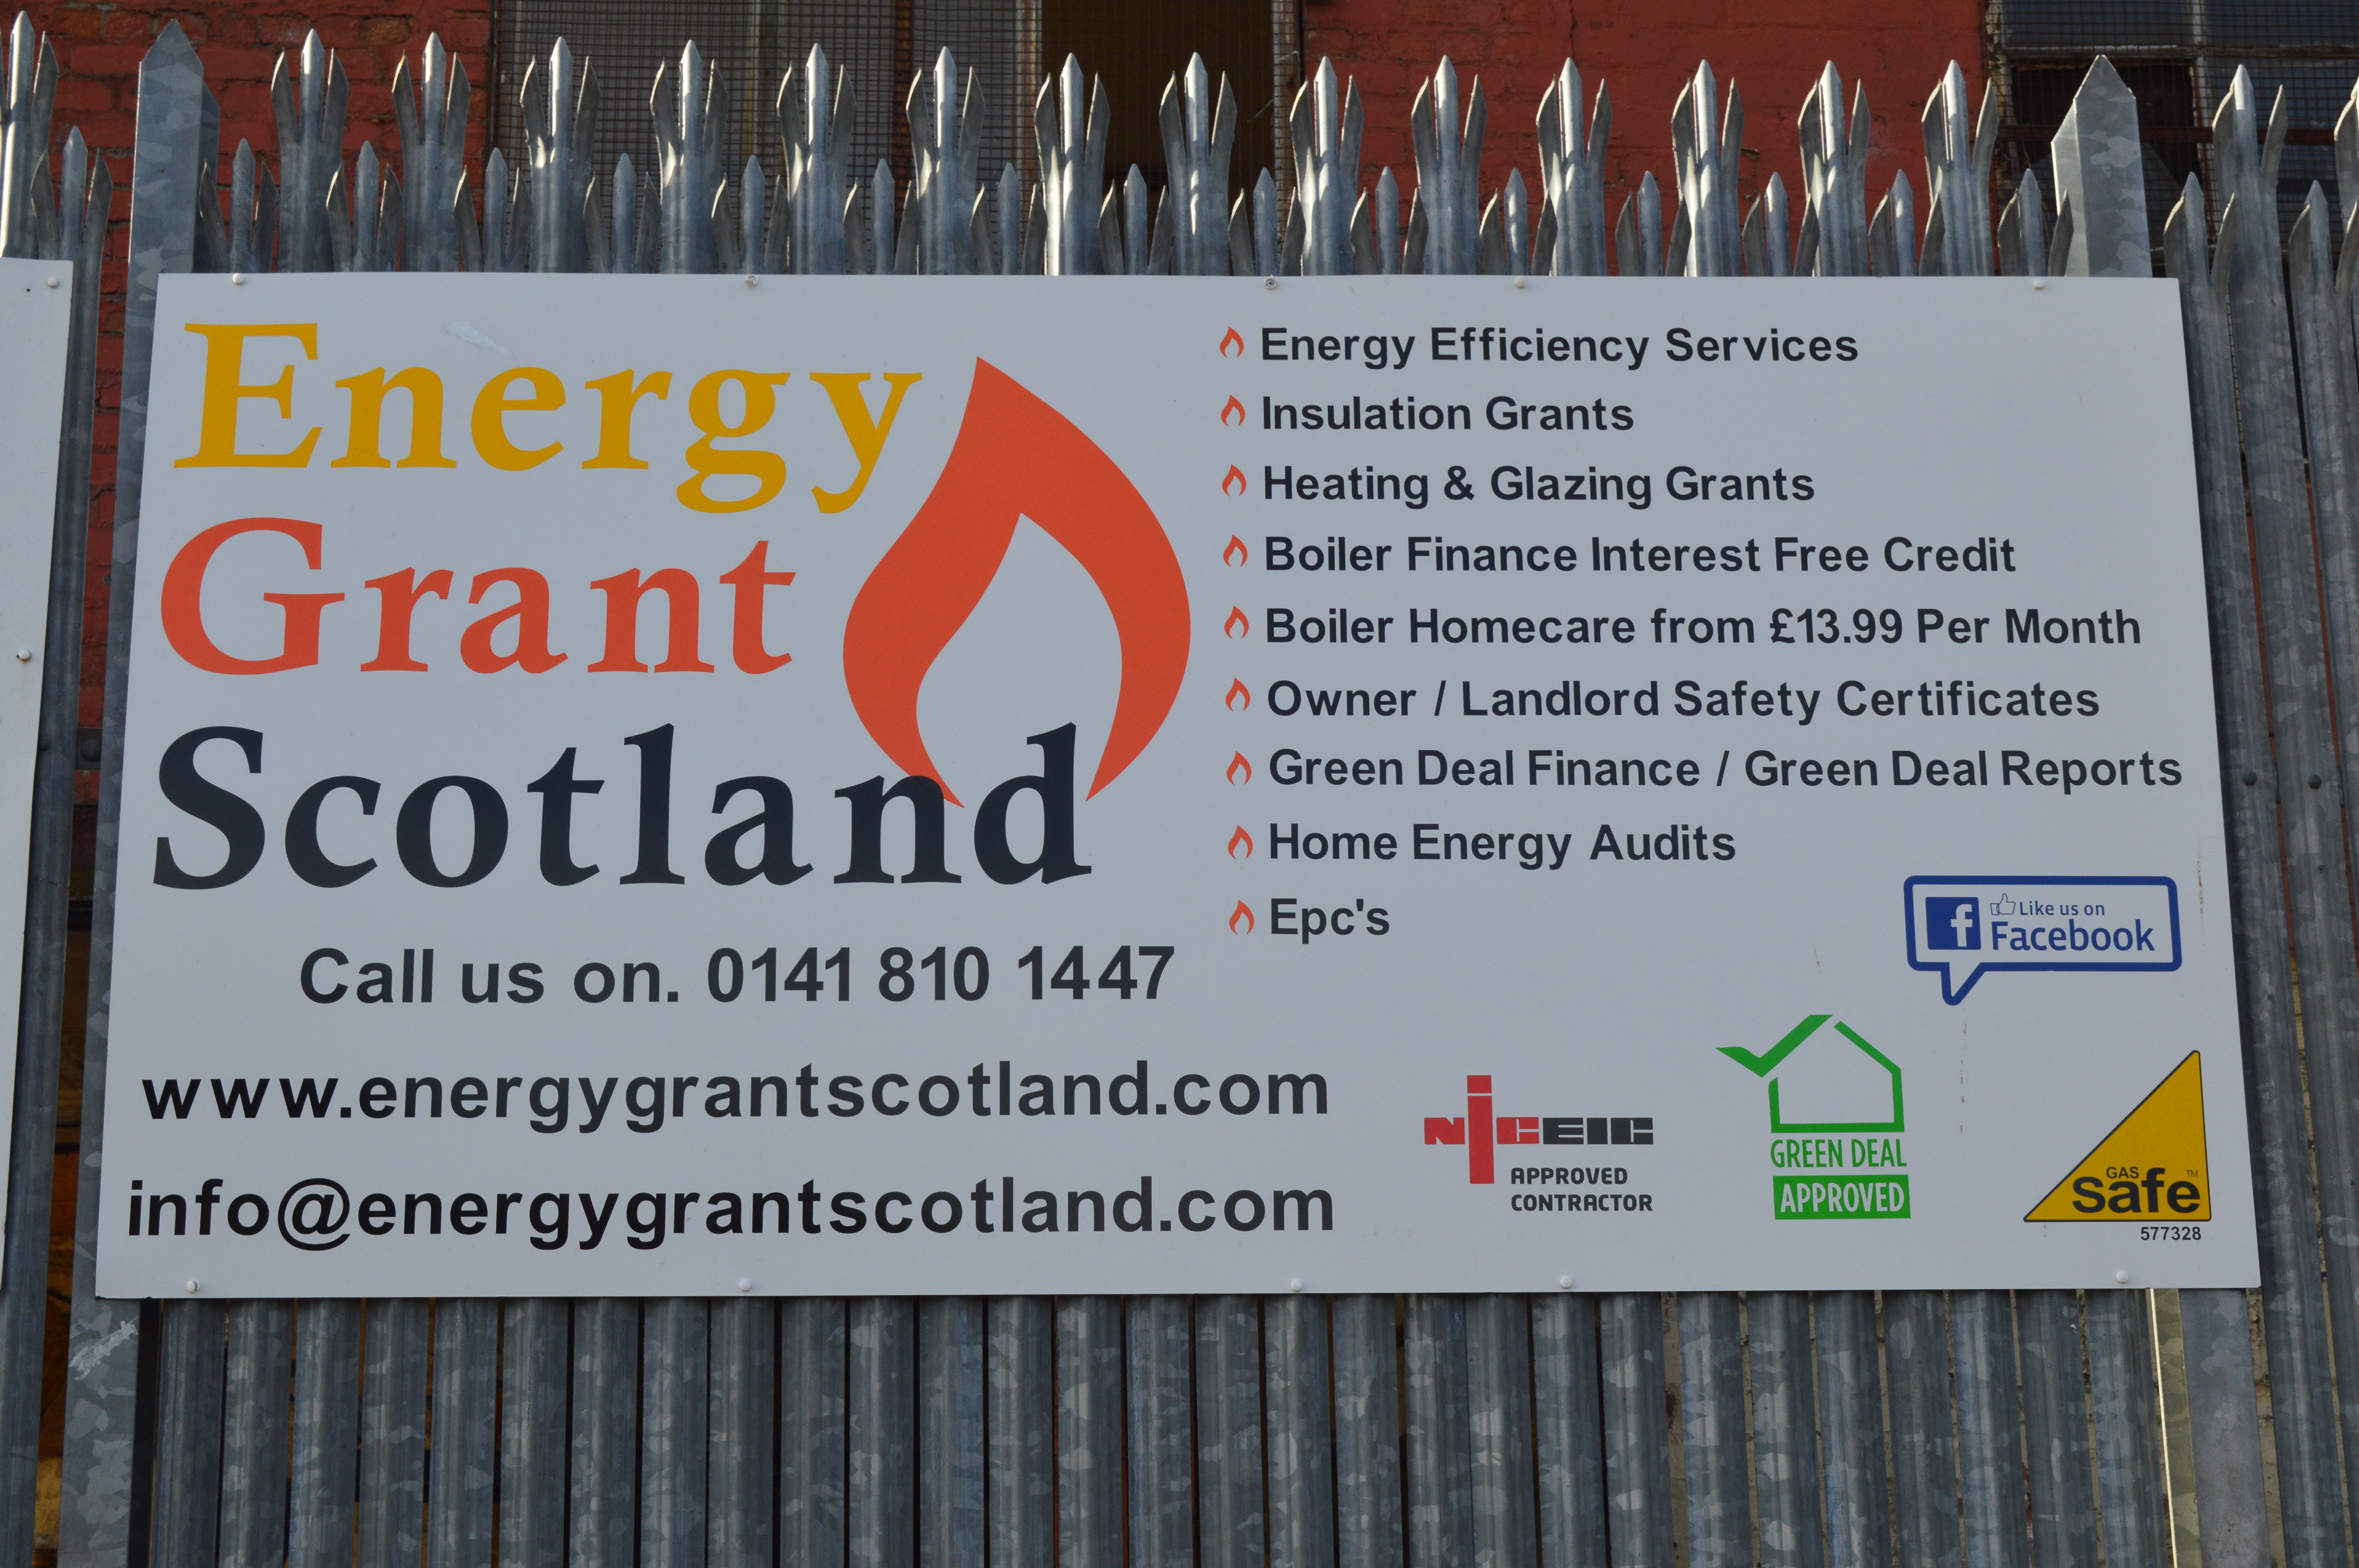 Energy Grant Scotland - Scotlands First Choice For Heating